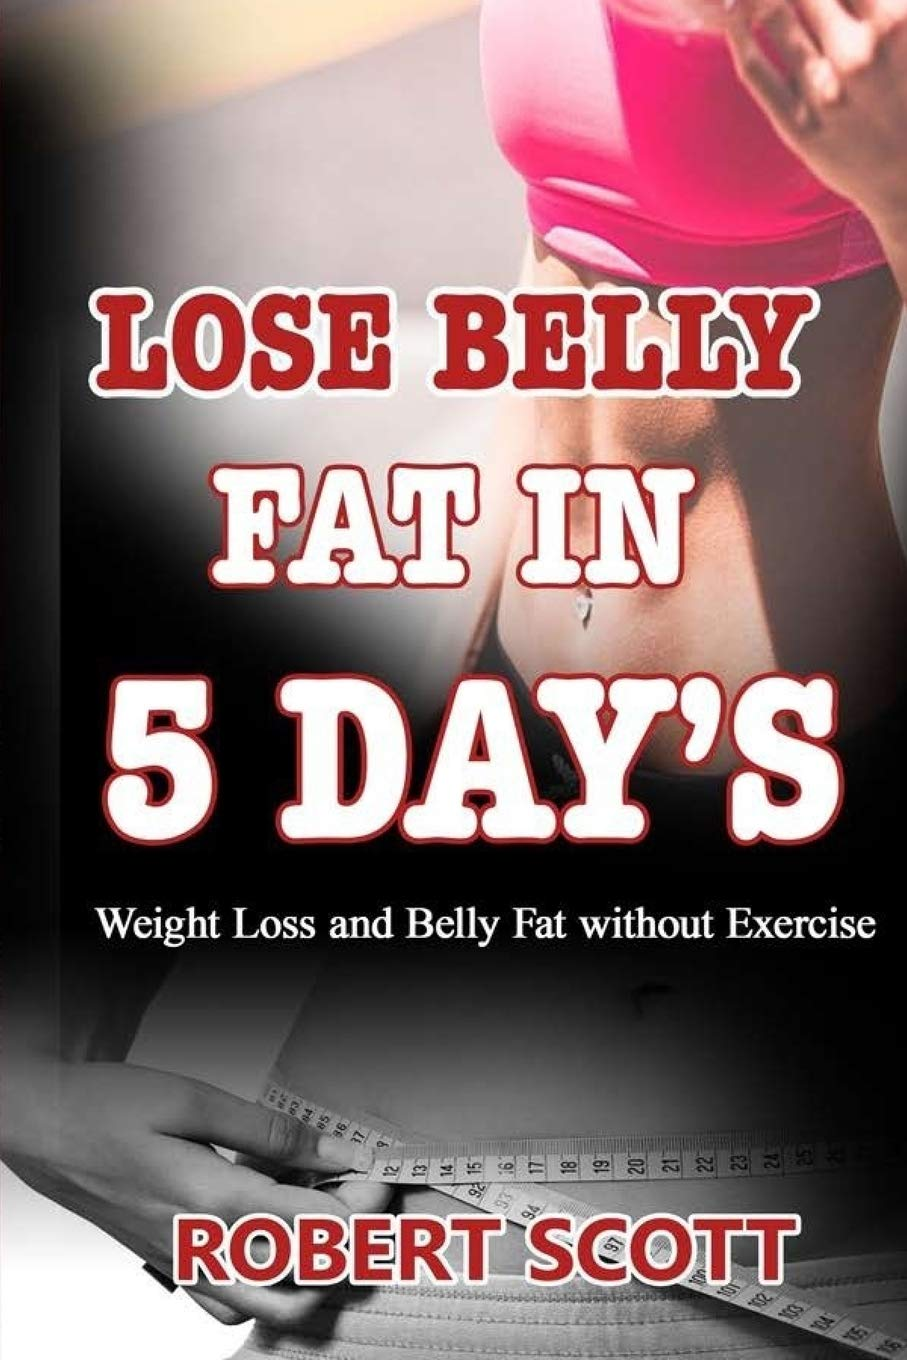 Lose belly Fat in 12 days: Weight Loss and Belly Fat without